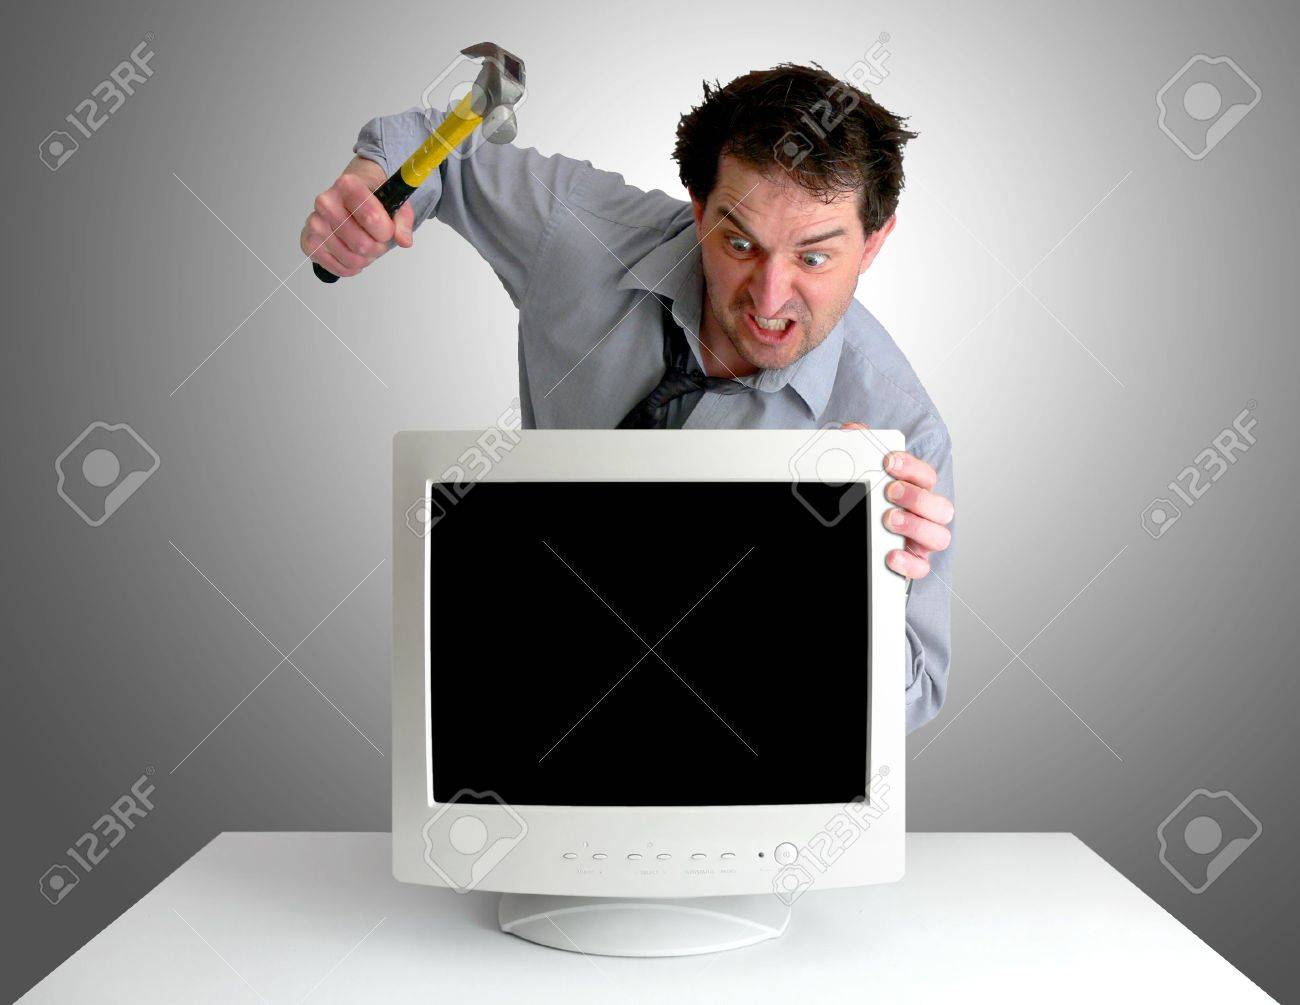 Tired, freaked-out business man preparing to smash a computer monitor with a hammer. Stock Photo - 417489